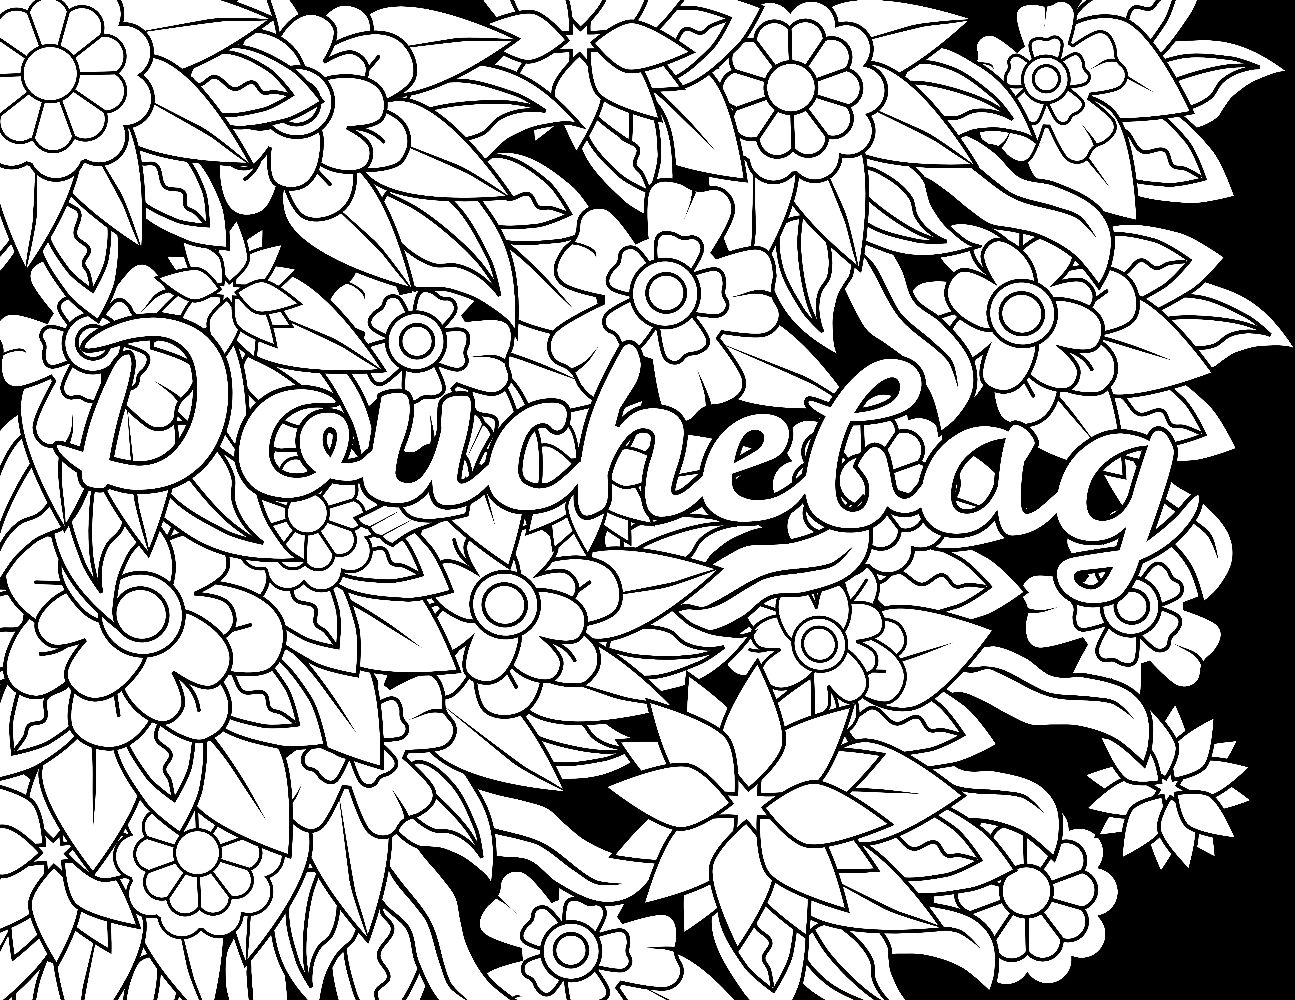 Cuss Words Coloring Pages Collection | Free Coloring Sheets